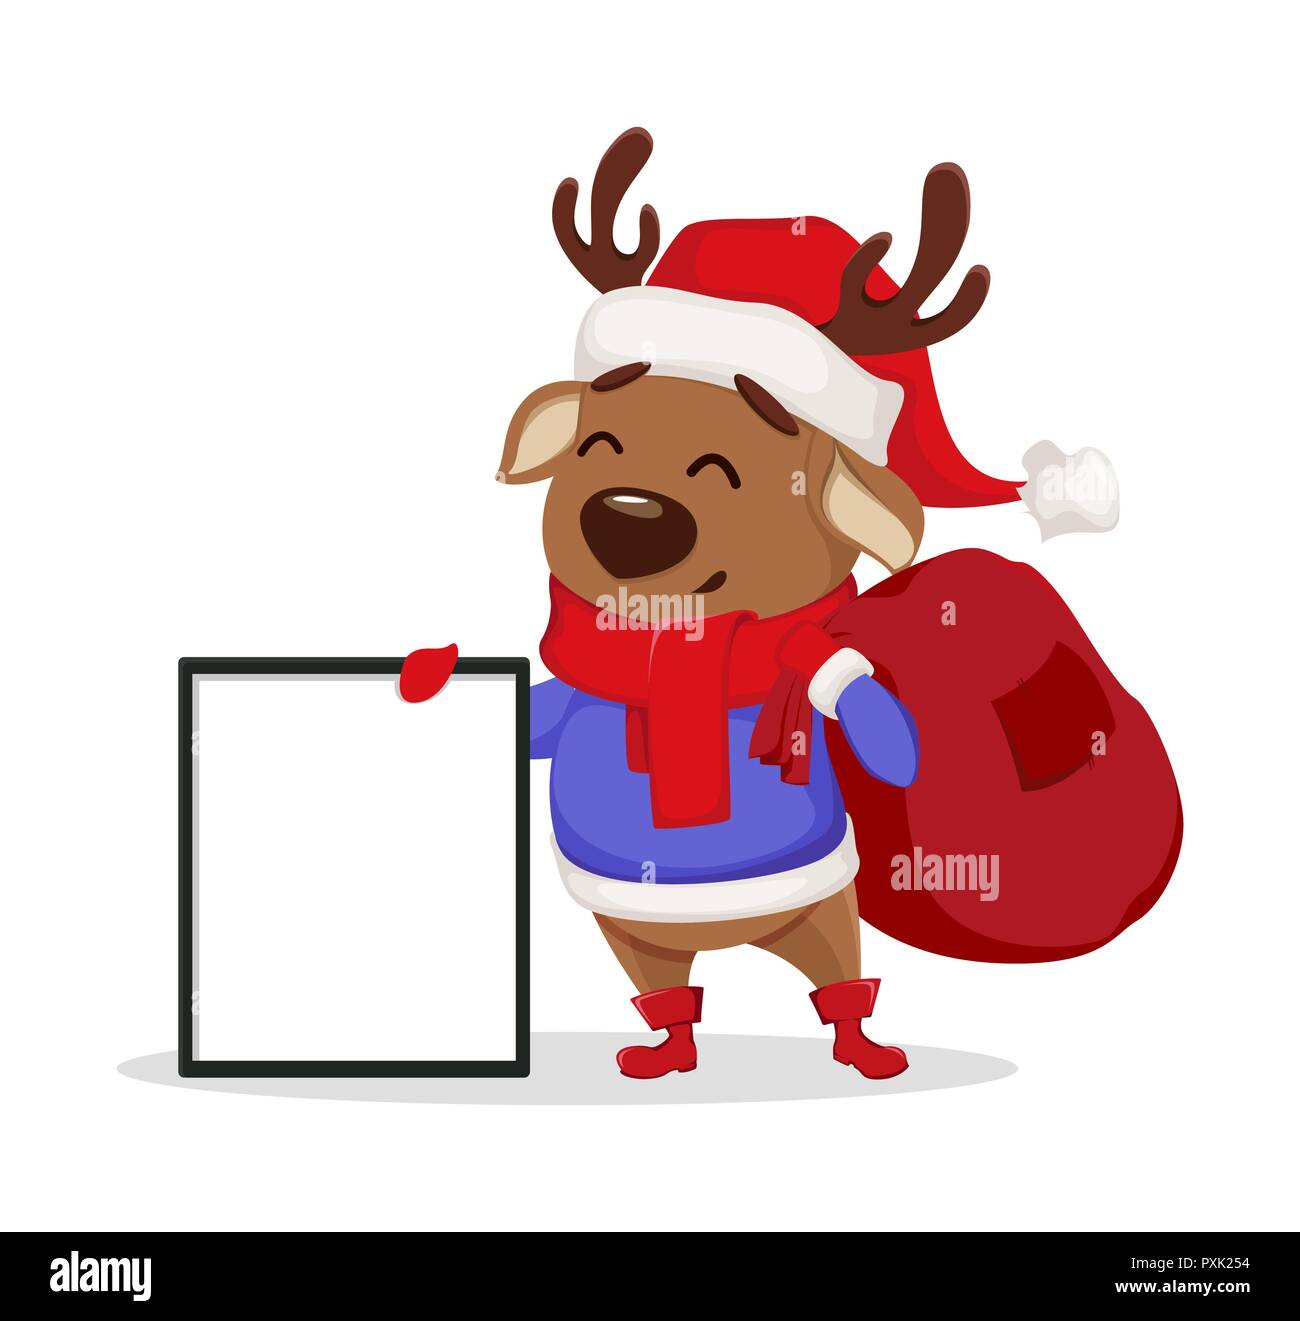 cfae08c54b43a Merry Christmas. Cute deer wearing Santa Claus hat and scarf. Cheerful funny  cartoon character holding big blank frame. Vector illustration on white b